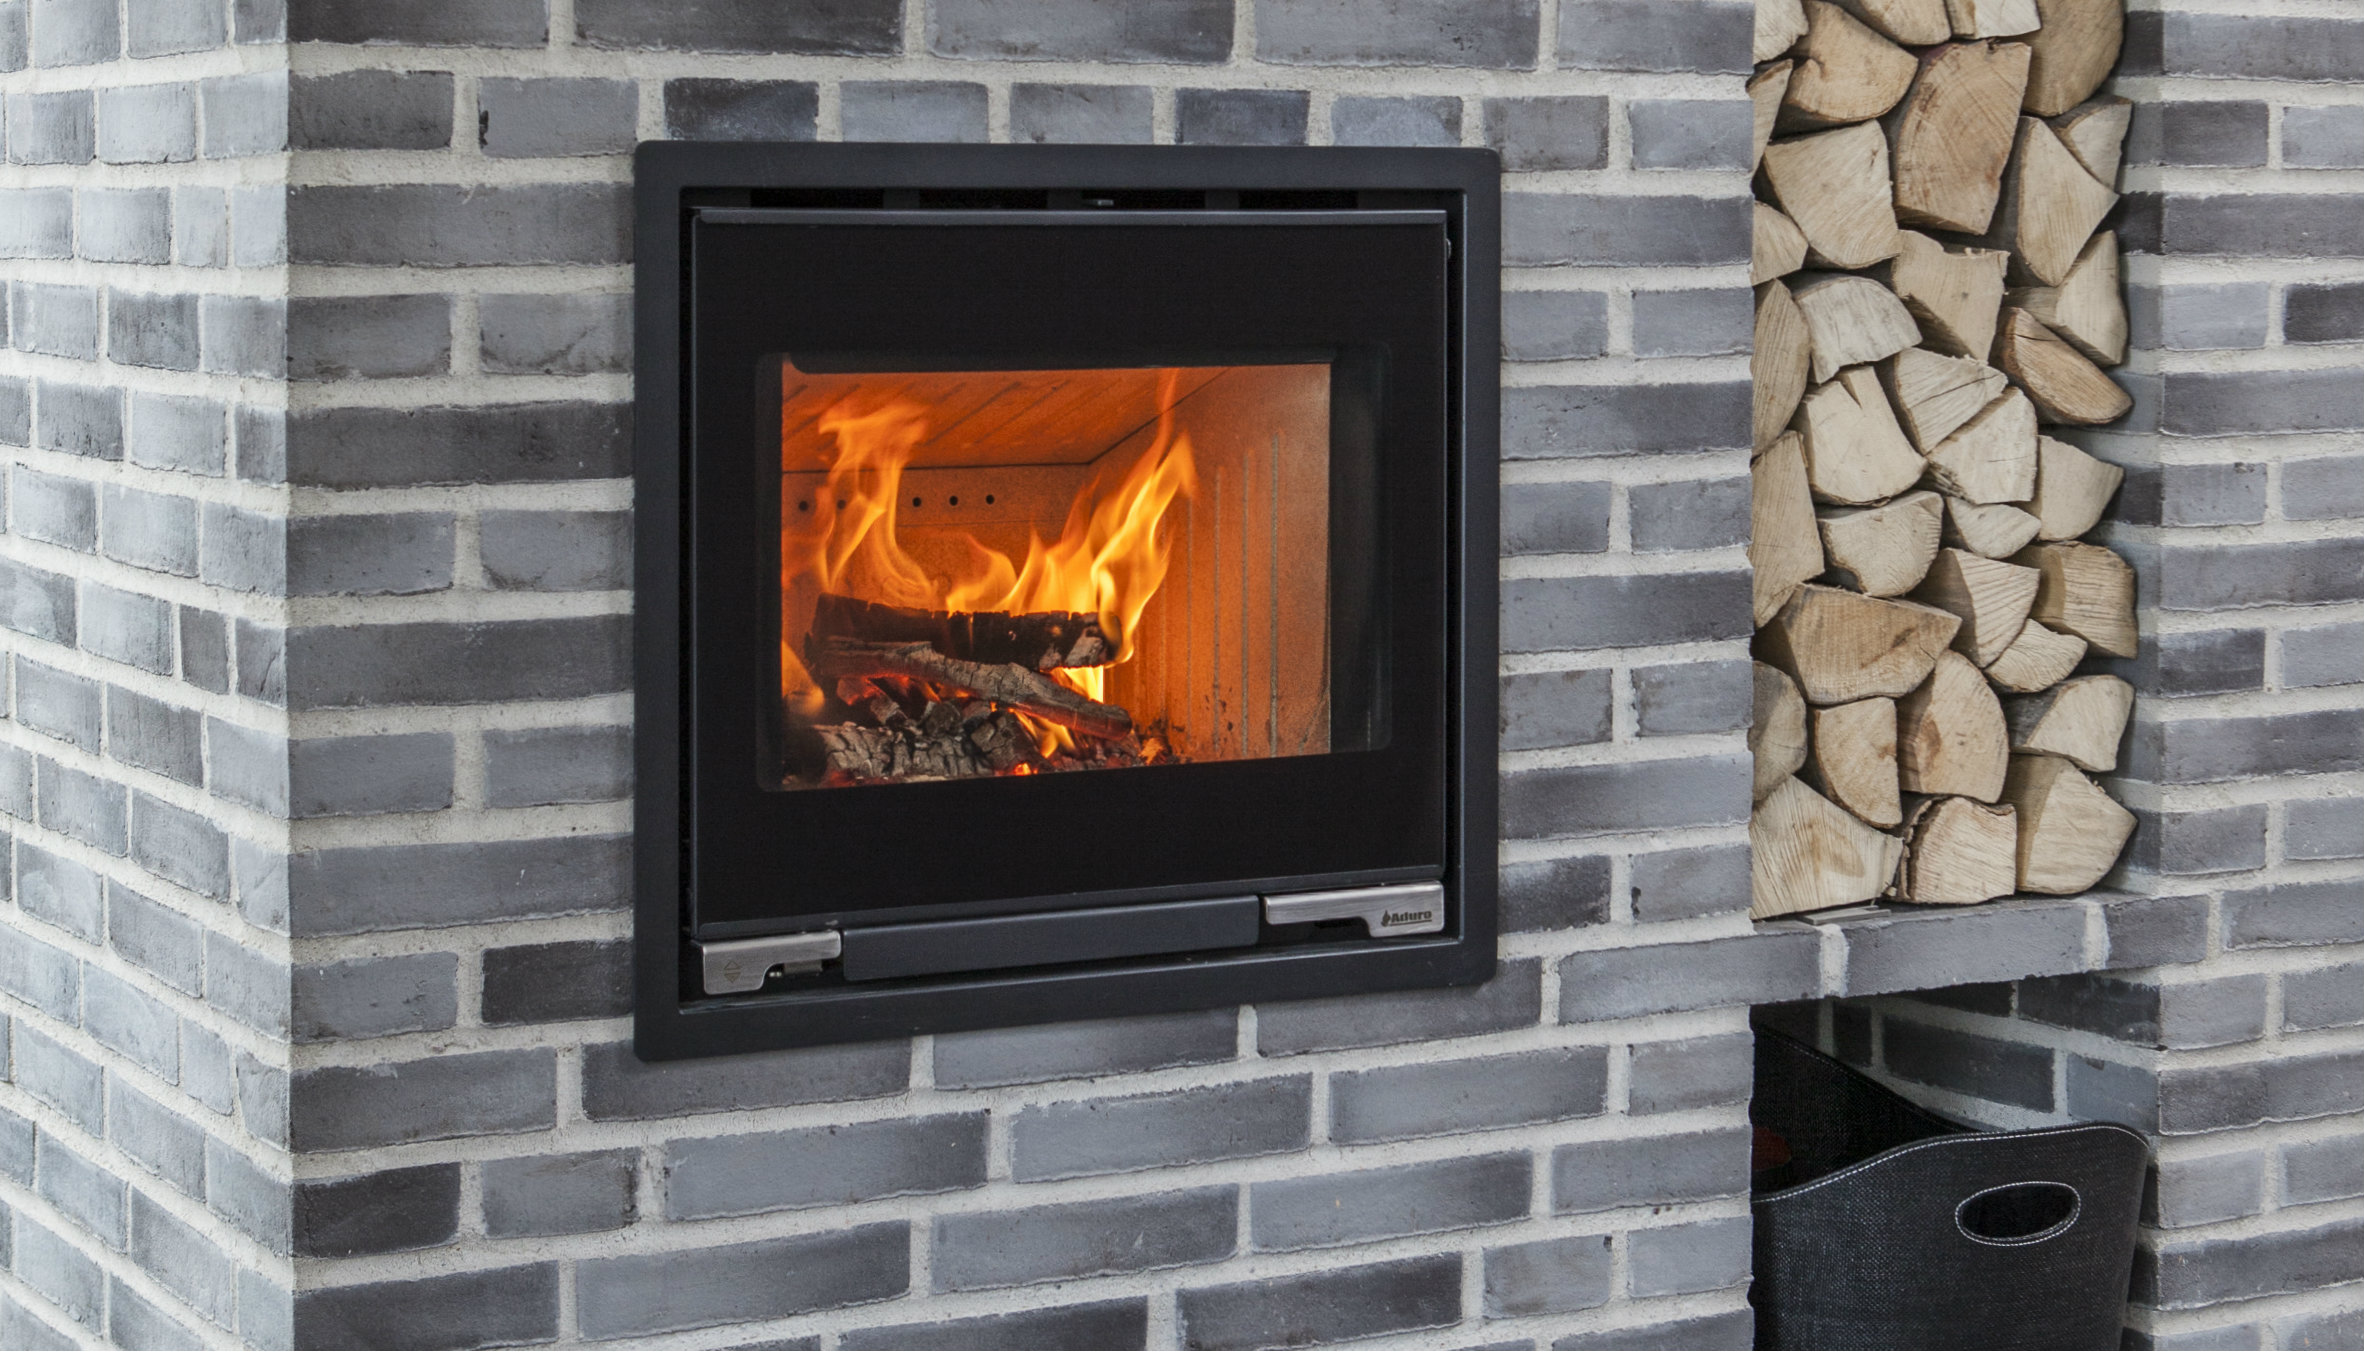 Fireplace Insert From Aduro See Aduro 5 1 Insert For